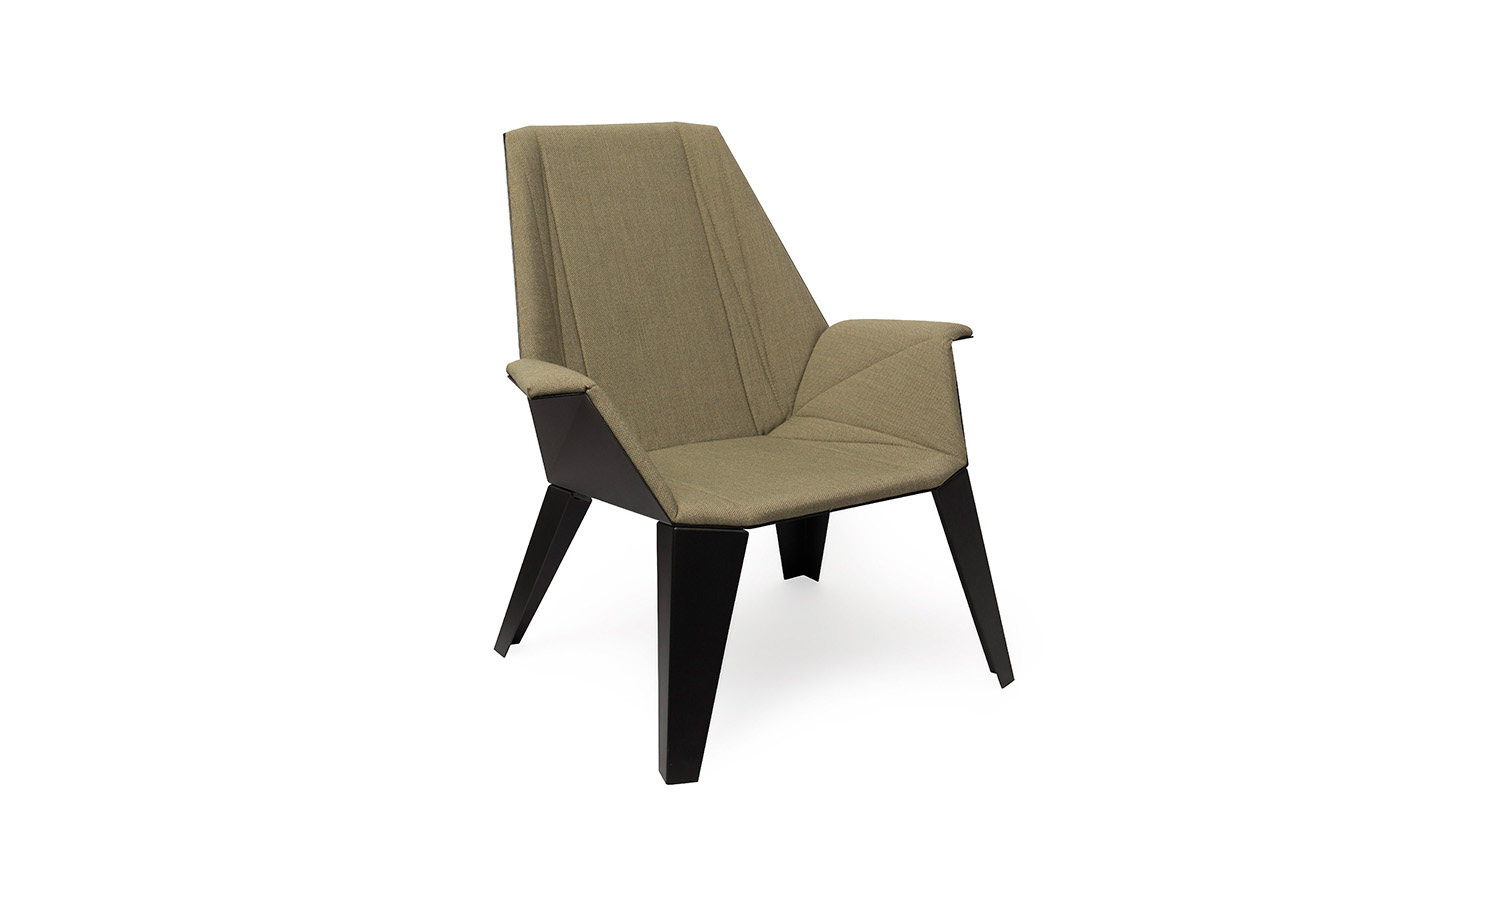 Alumni Lounge Alpha black forest upholstered_side angle.jpg